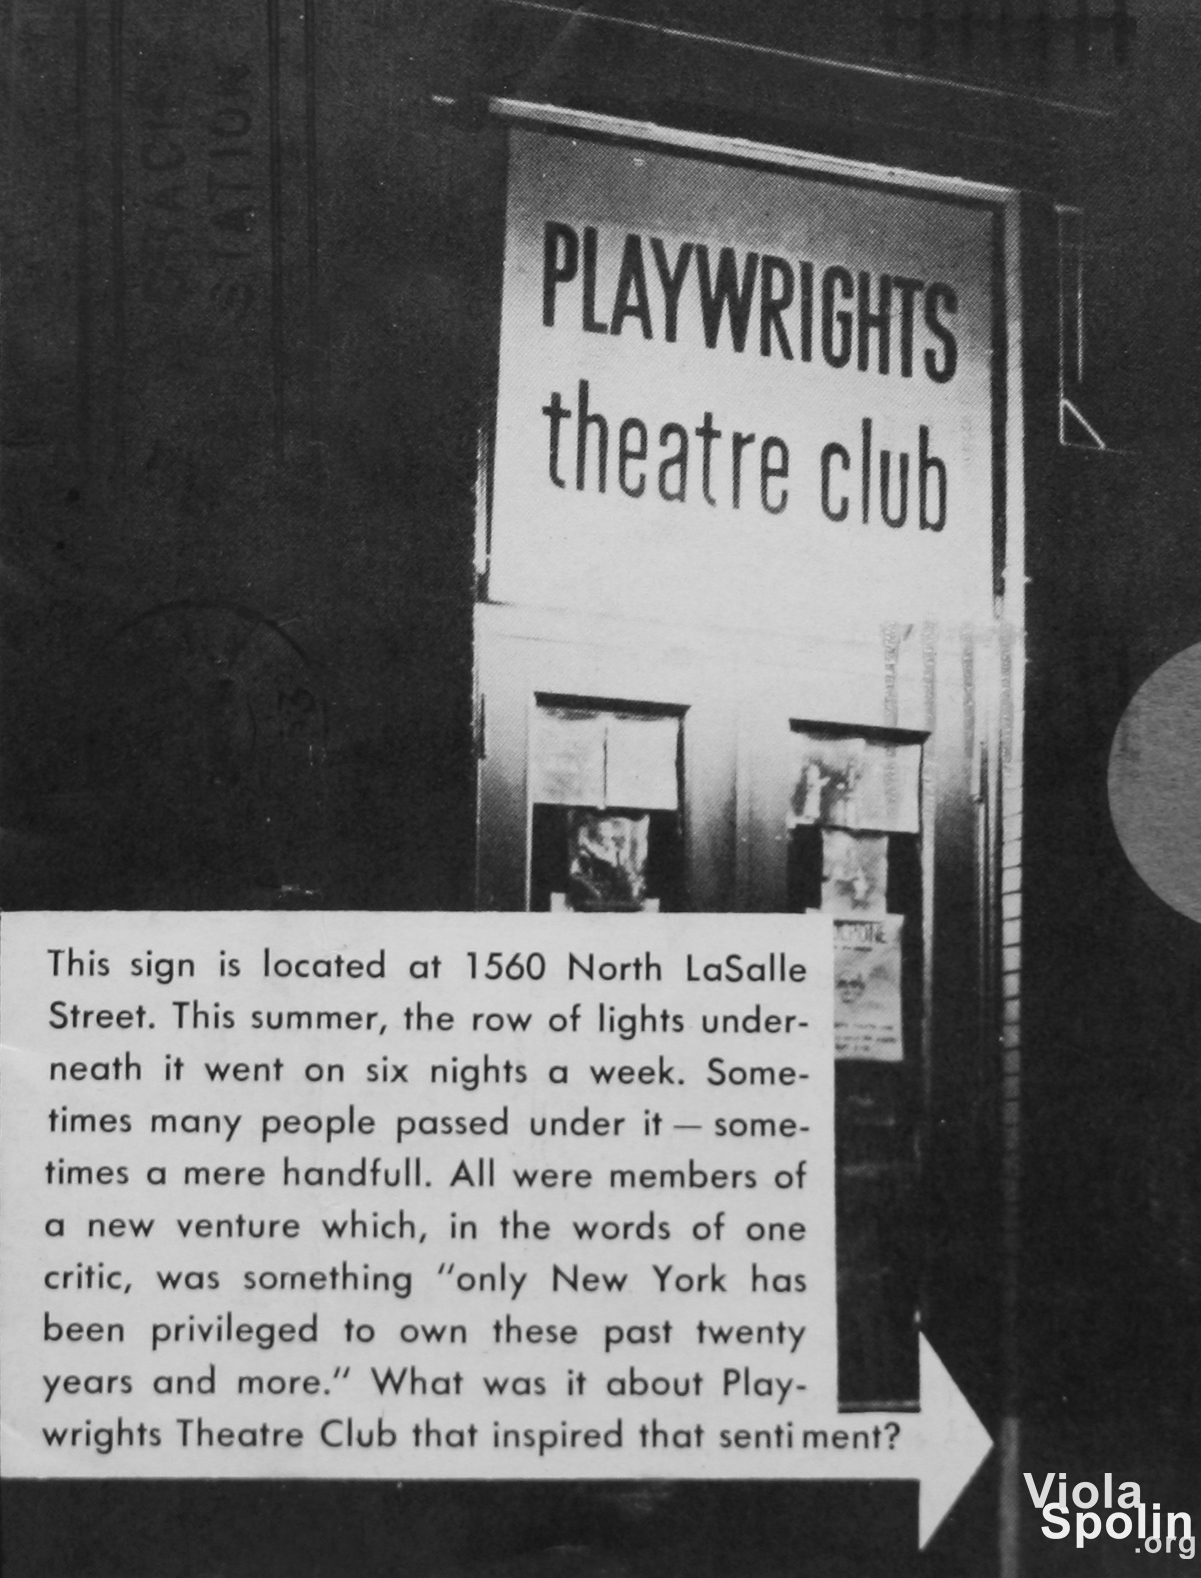 Compass and Playwrights Theater Club